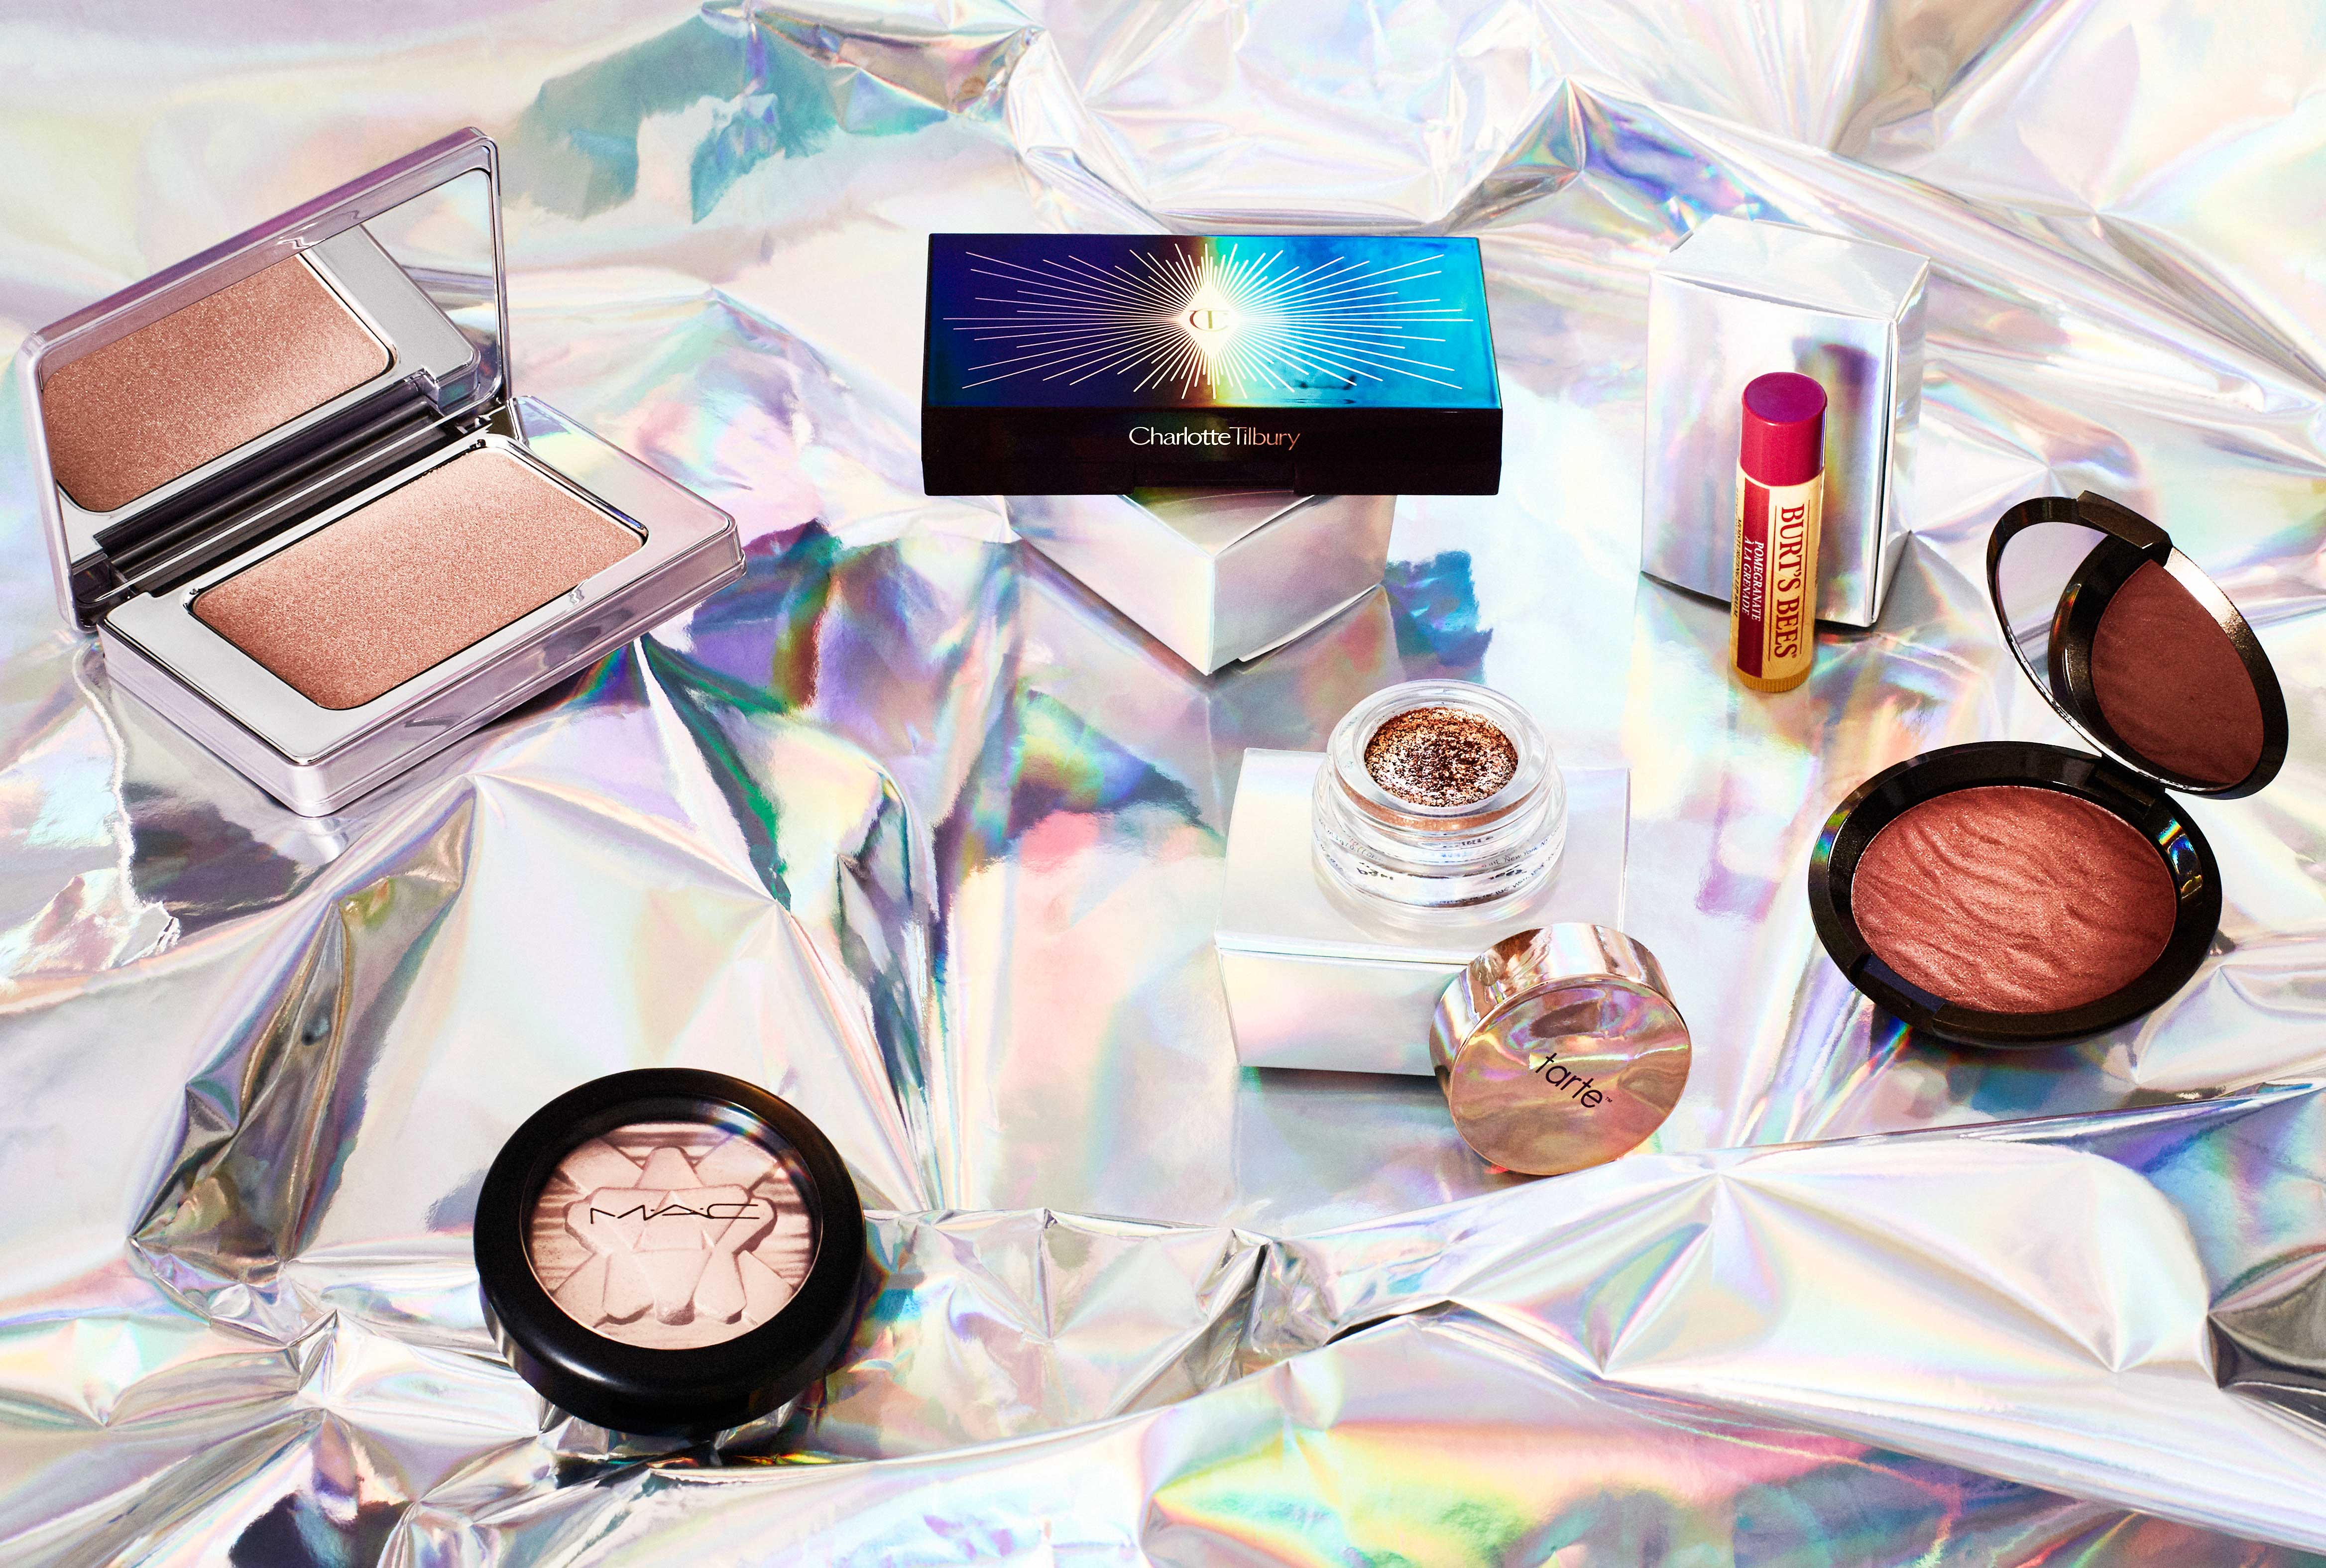 All We Want For Christmas Is Glowing Skin and Sparkling Make Up